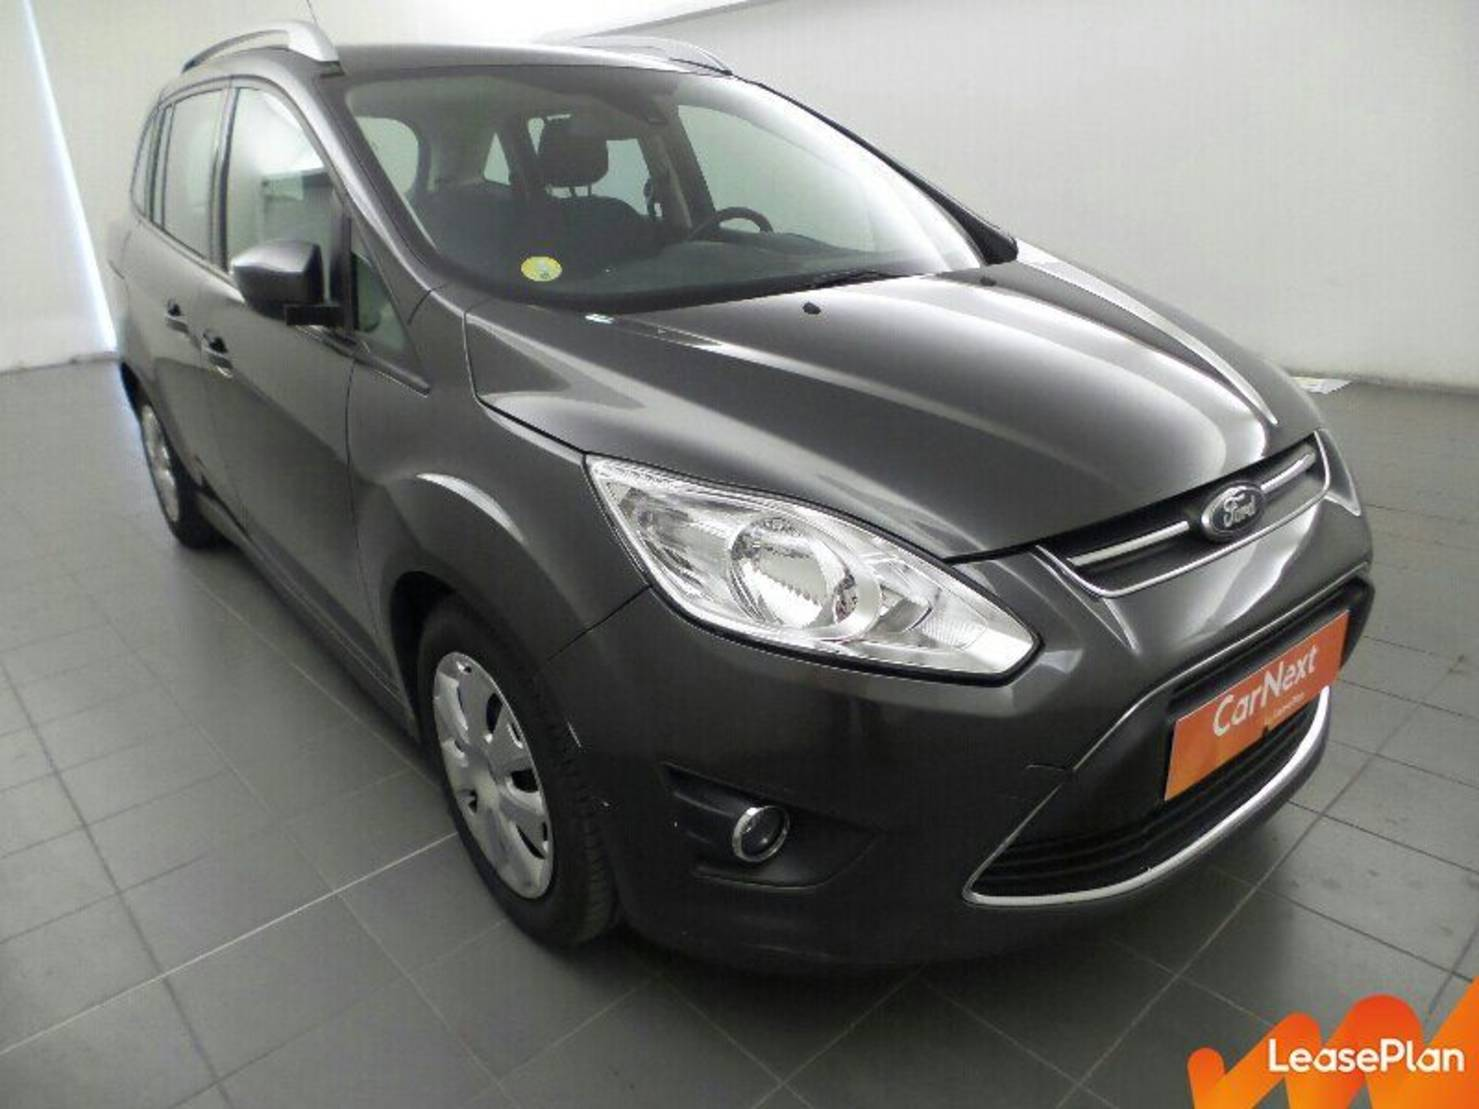 Ford Grand C-Max 1.6 TDCI 115 FAP S&S, Business Nav detail2